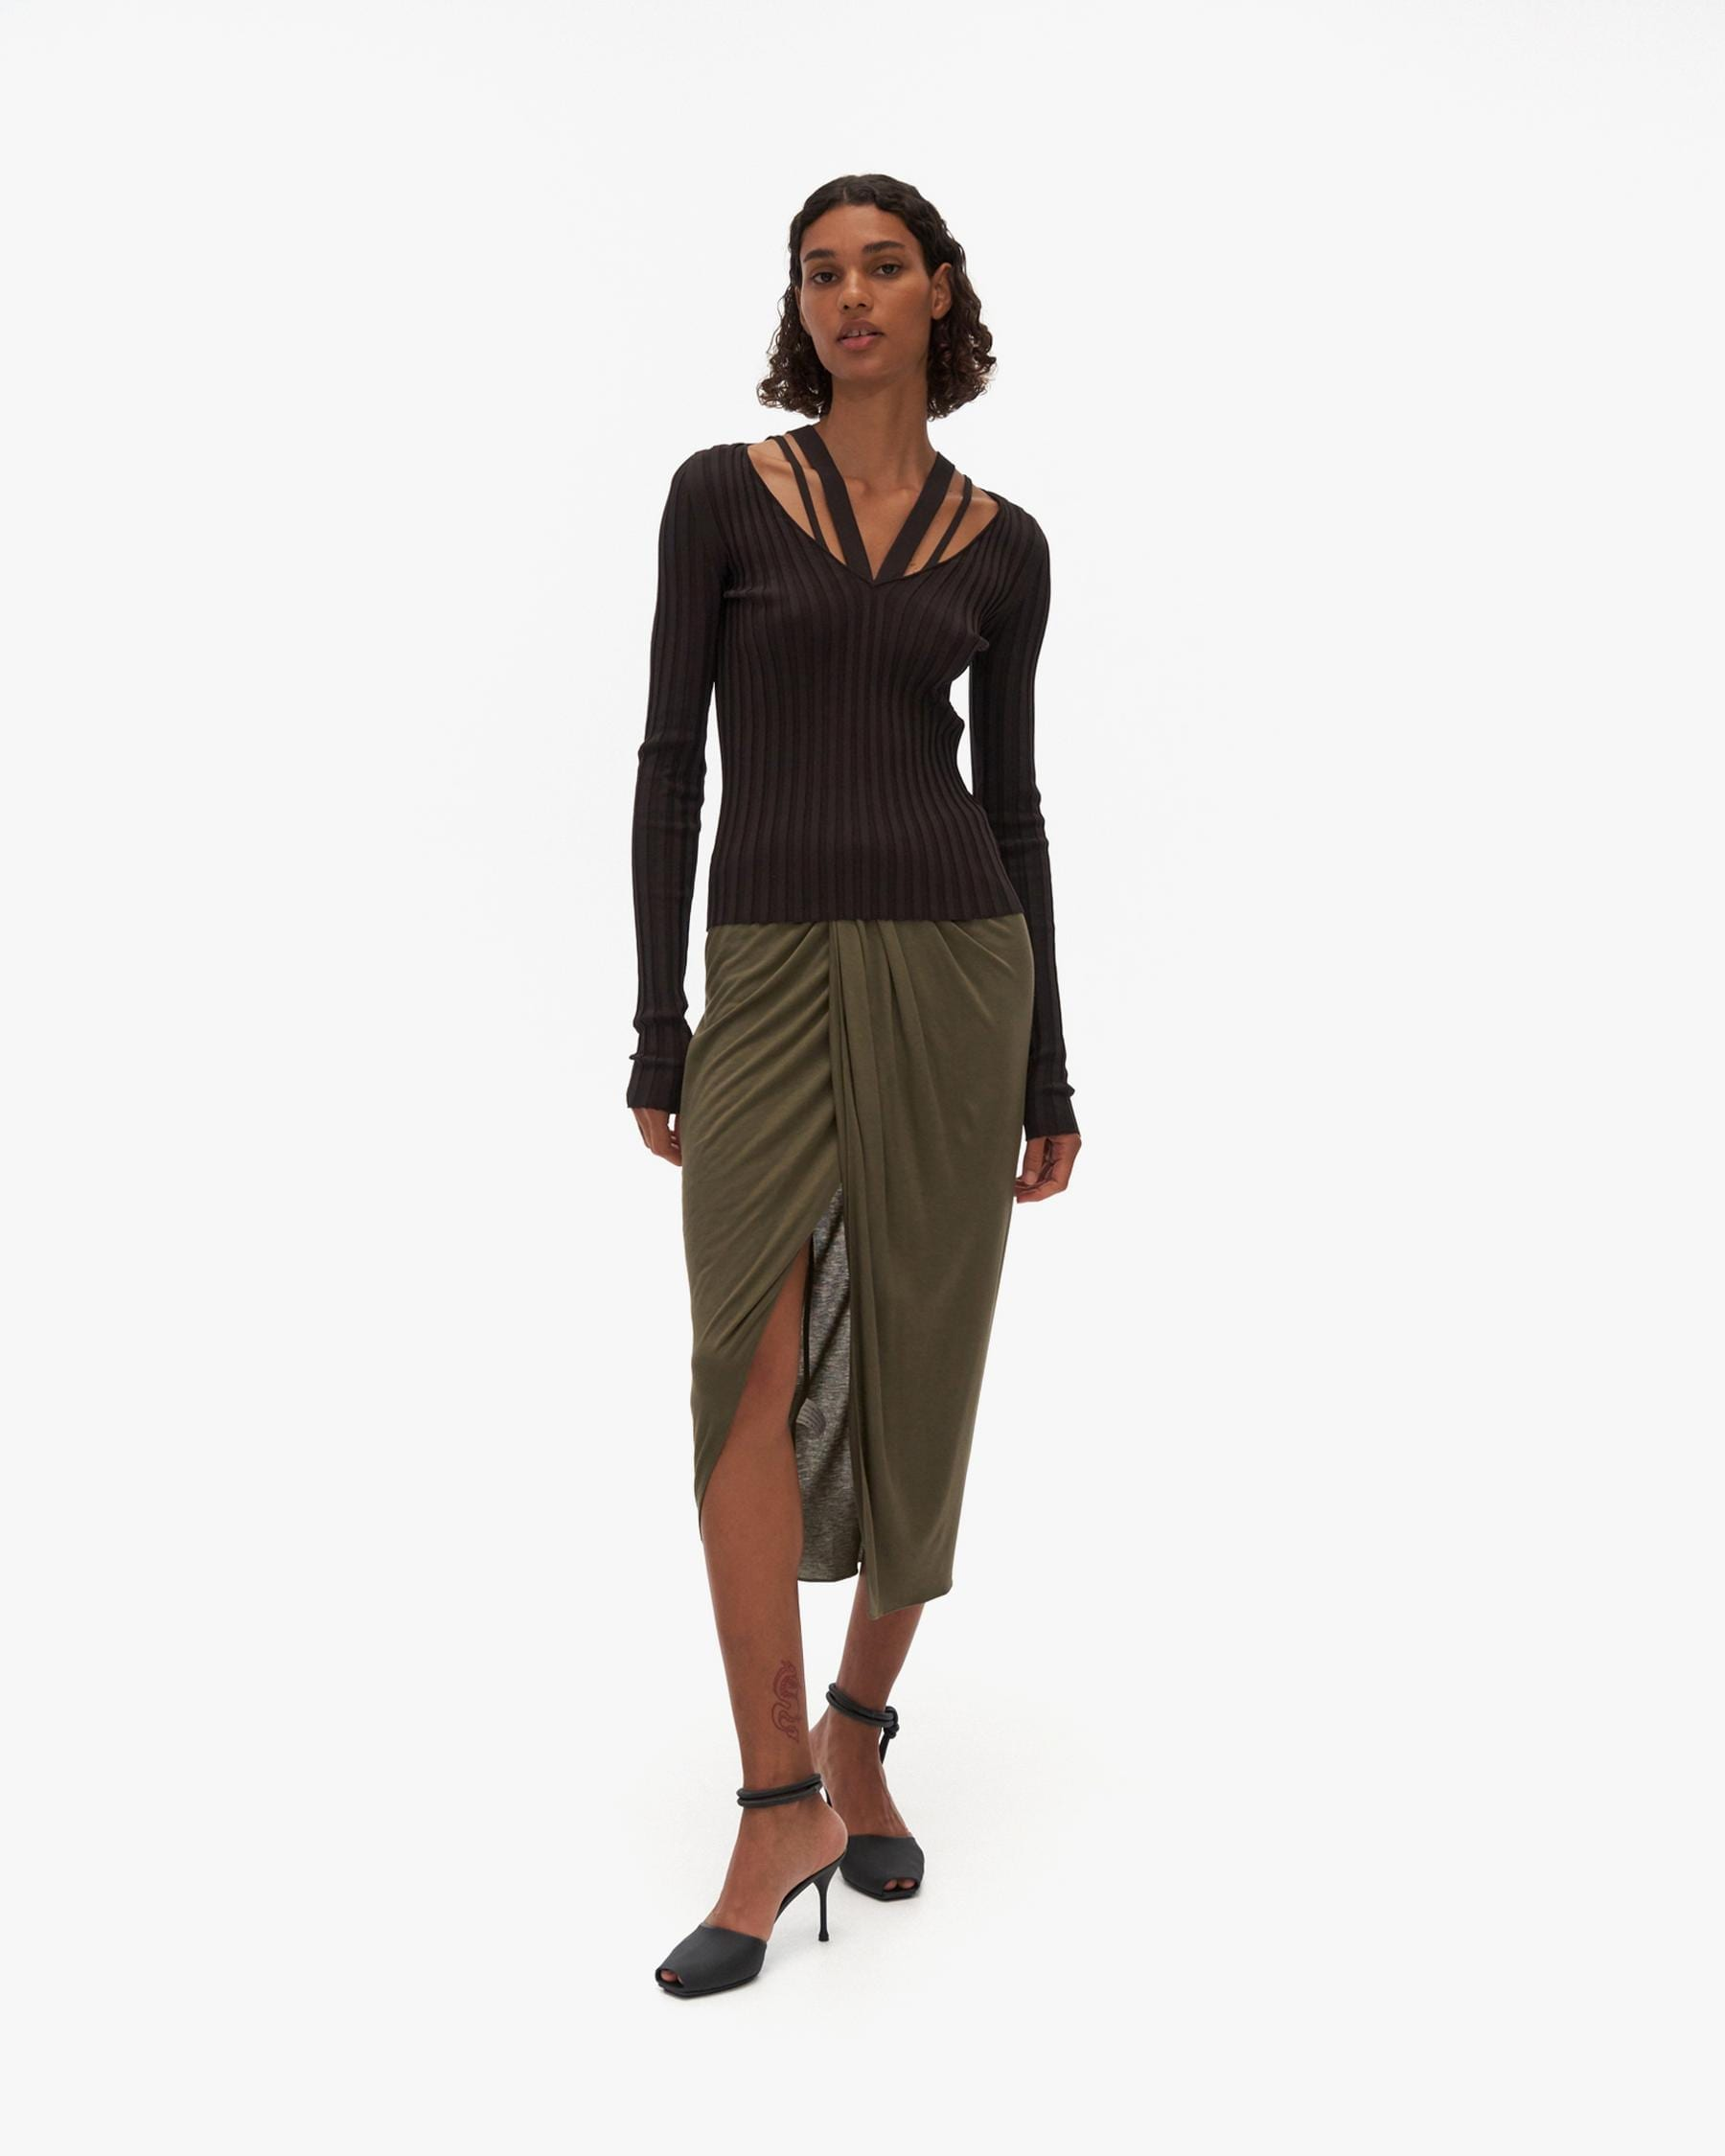 Helmut Lang: Friends & Family Sale with 25% Off – Early Access